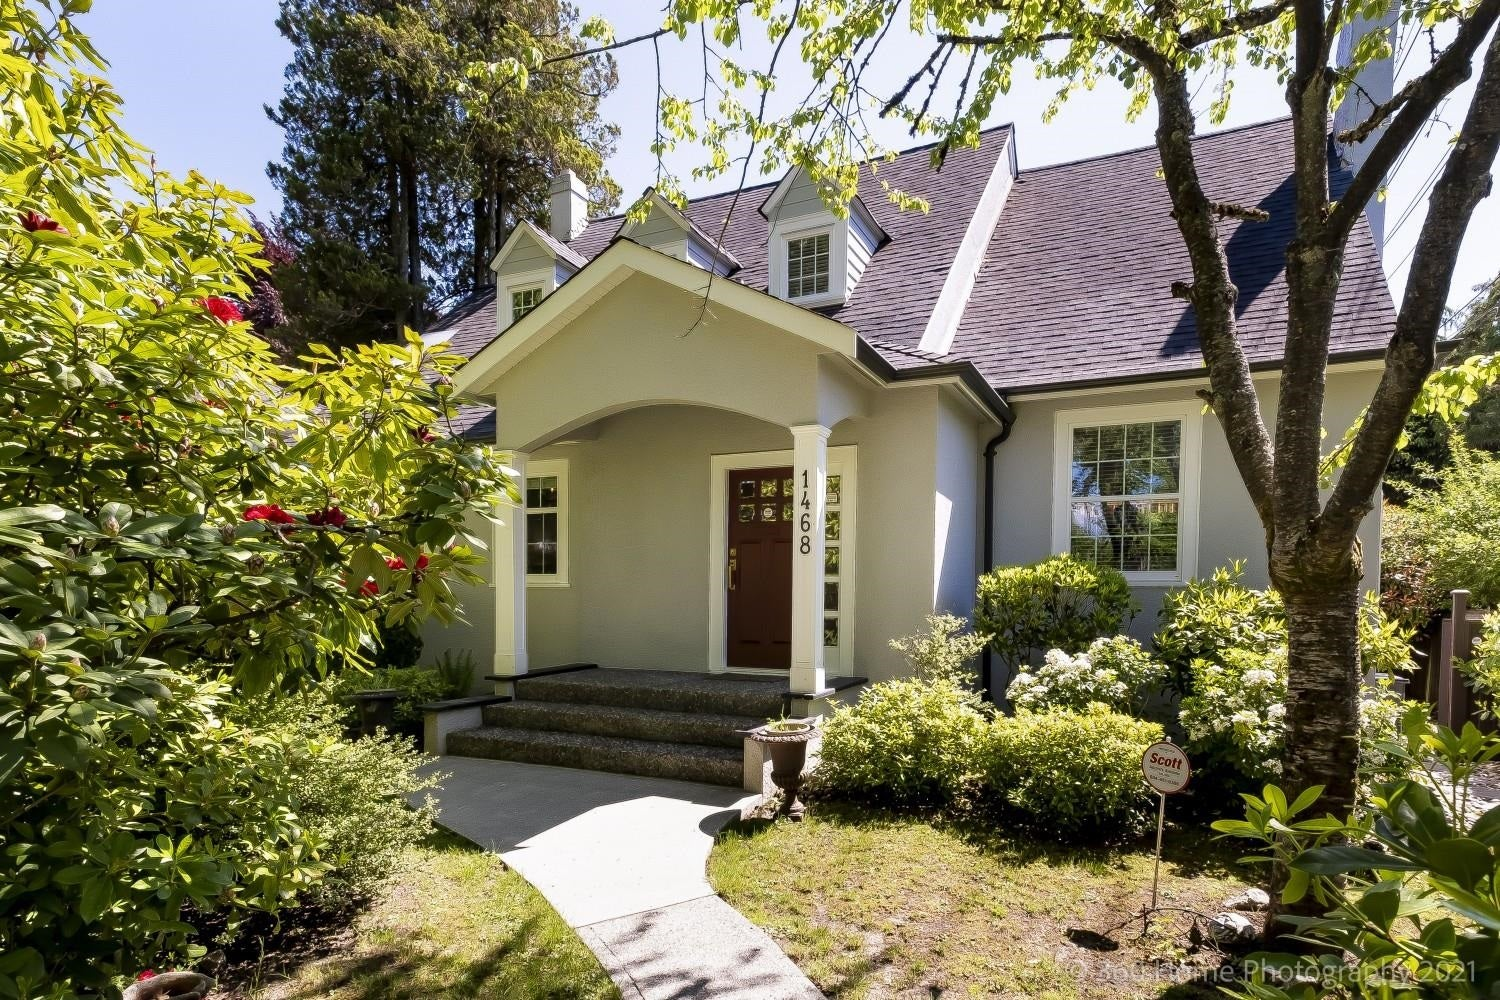 1468 W 45TH AVENUE - South Granville House/Single Family for sale, 4 Bedrooms (R2621393)